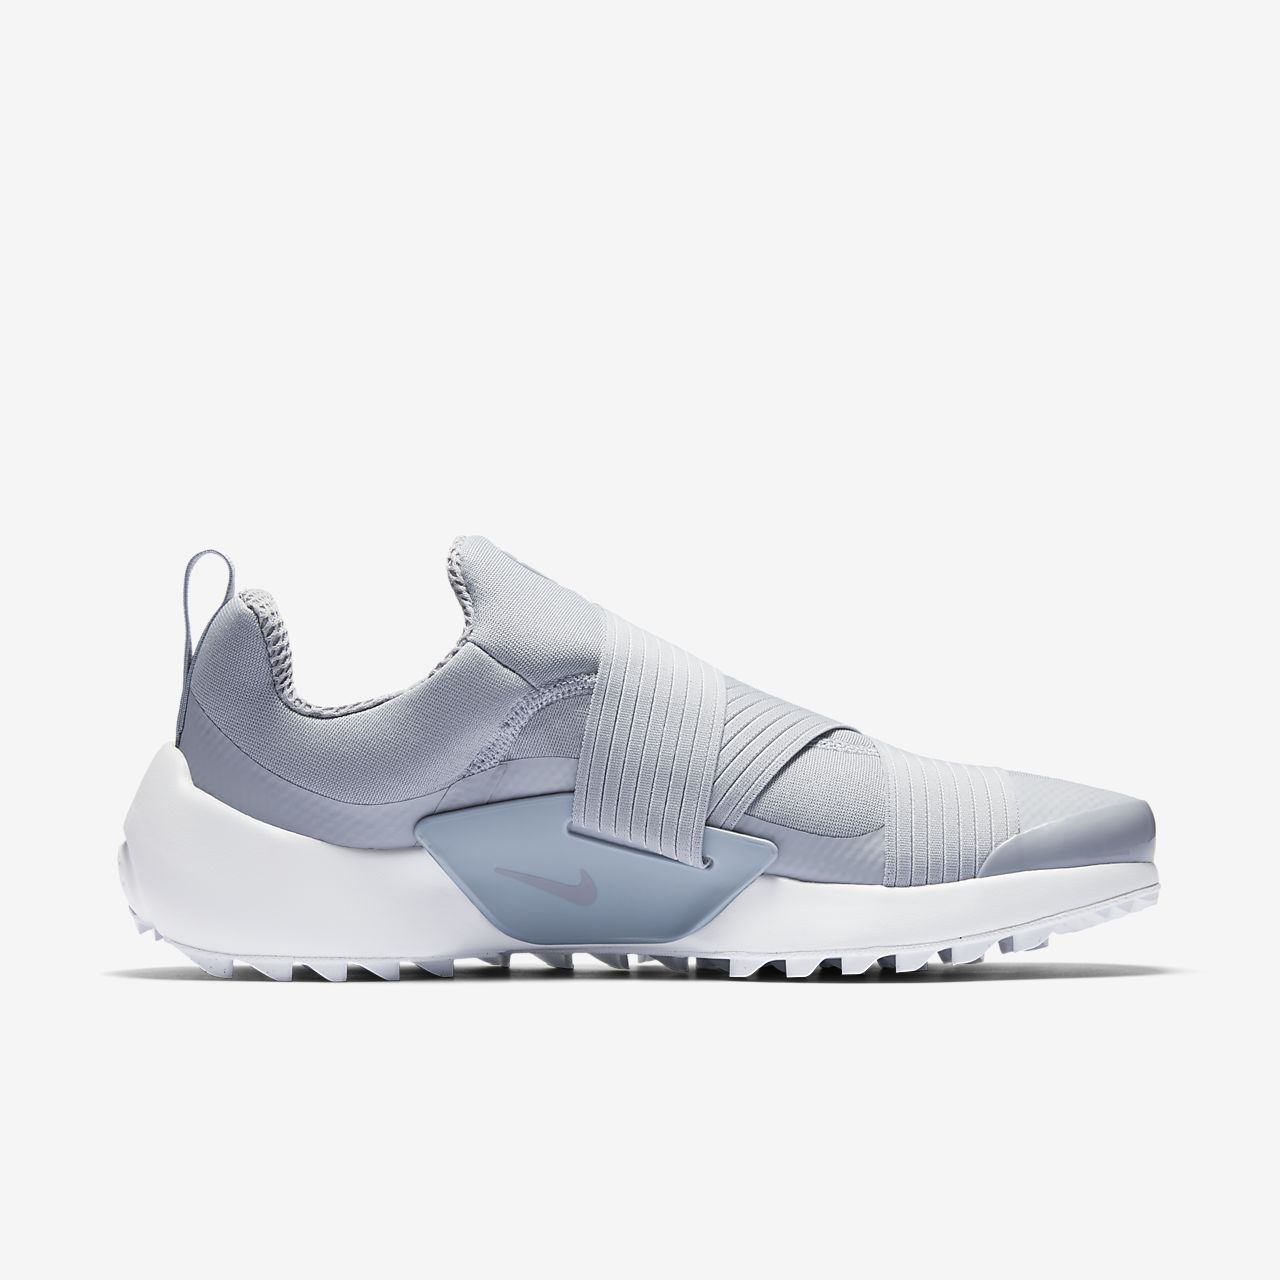 nike air zoom gimme mens golf shoe nikecom in